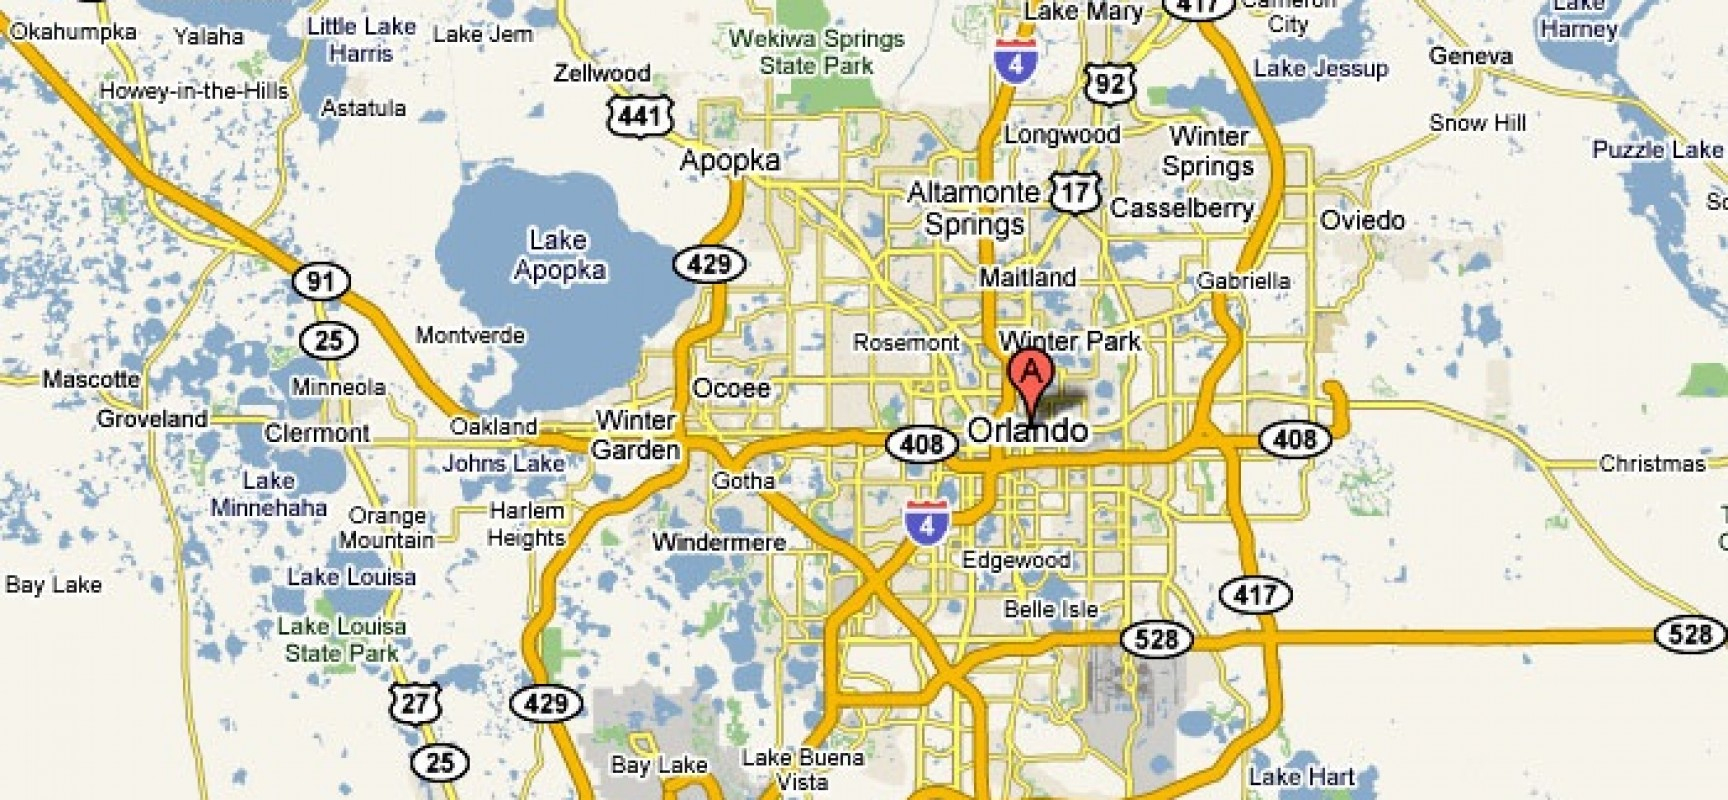 Orlando, Florida – Usa | Travel Featured - Road Map To Orlando Florida